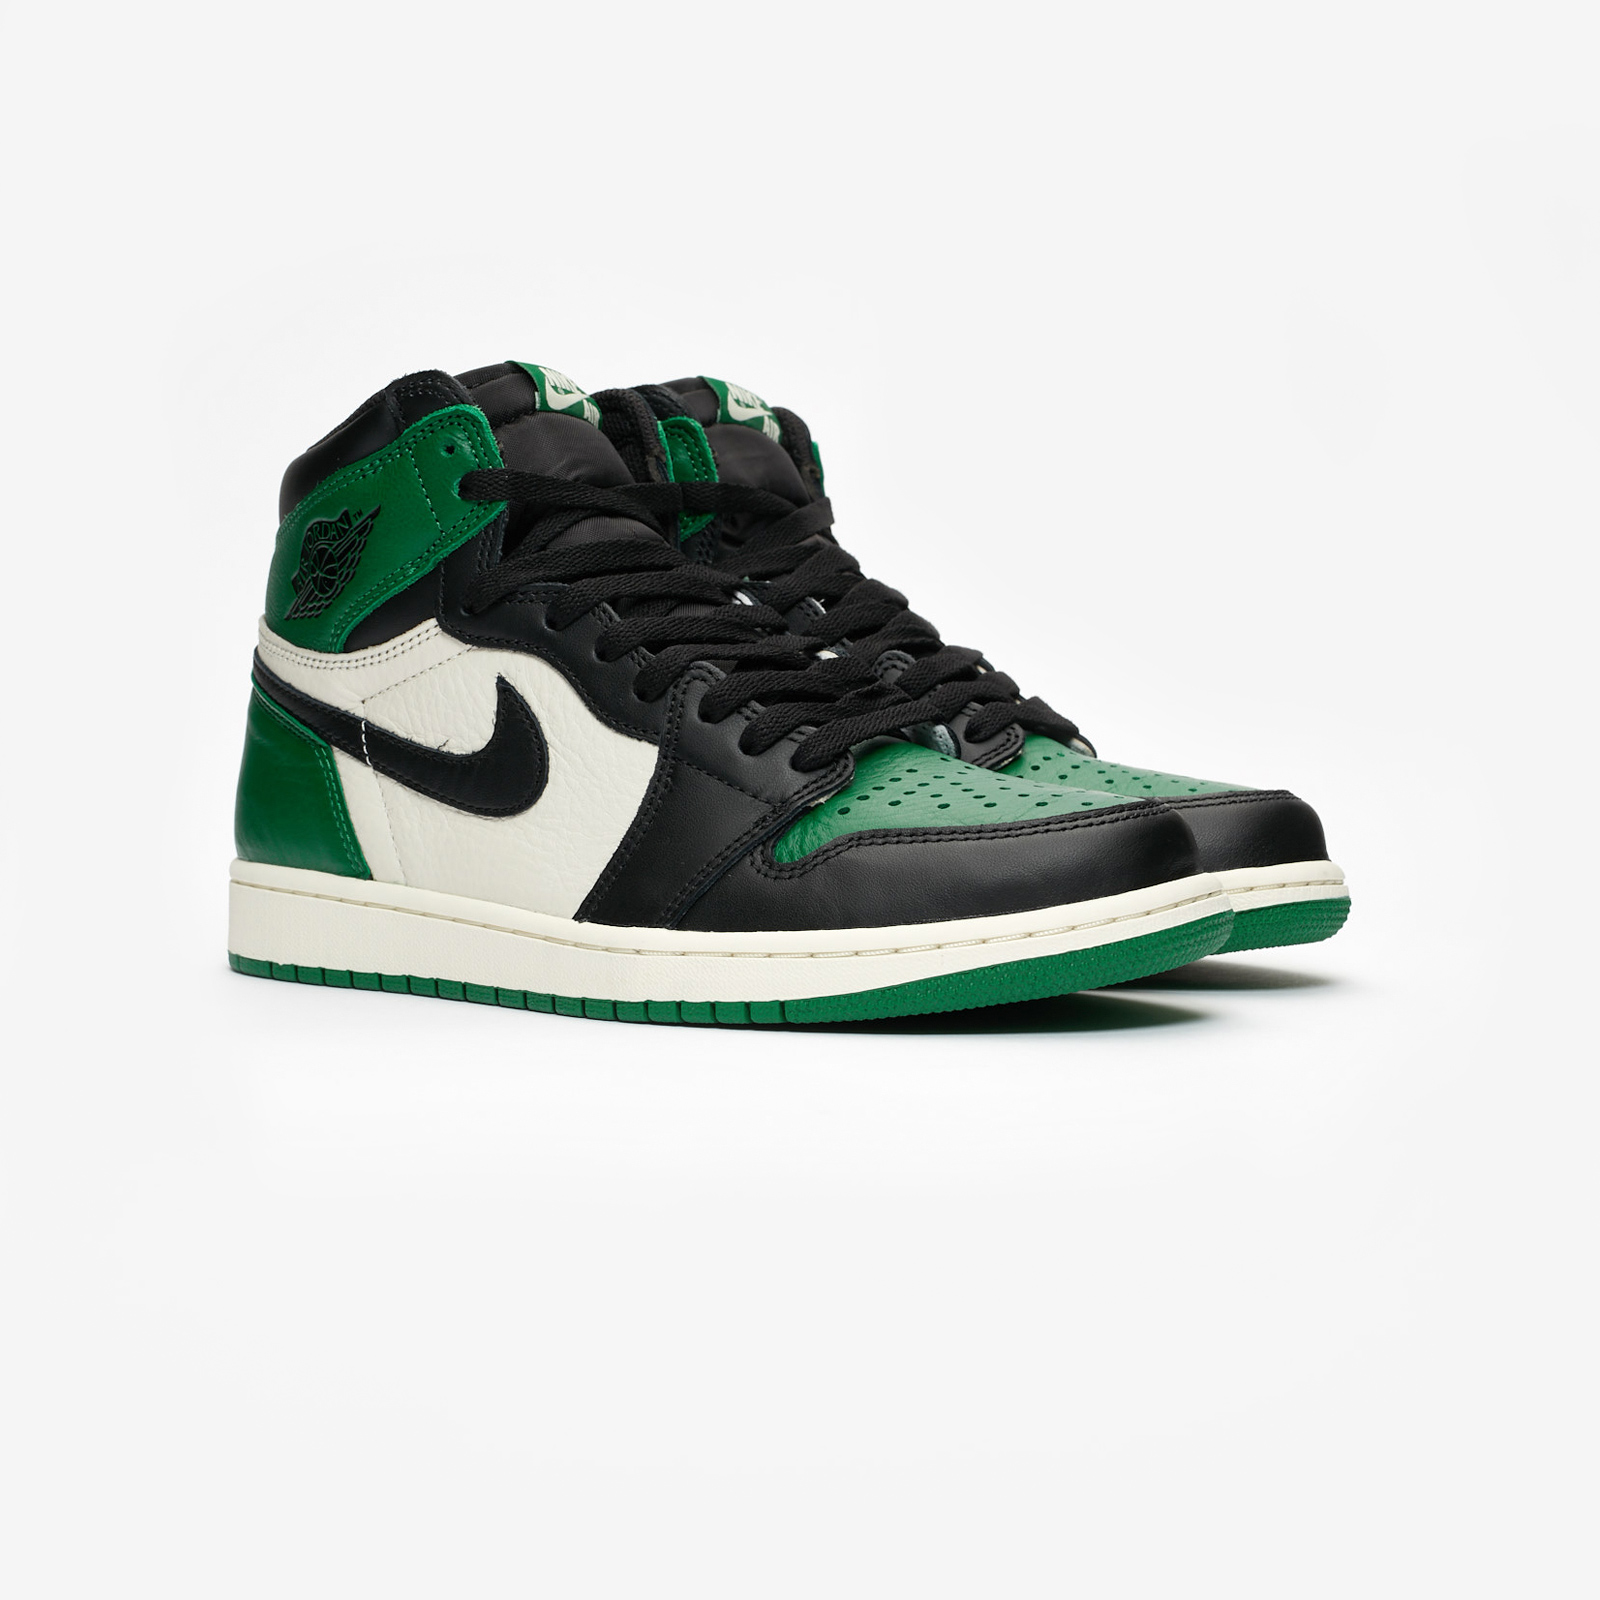 half off 50a90 a0ba0 Jordan Brand Air Jordan 1 Retro High OG